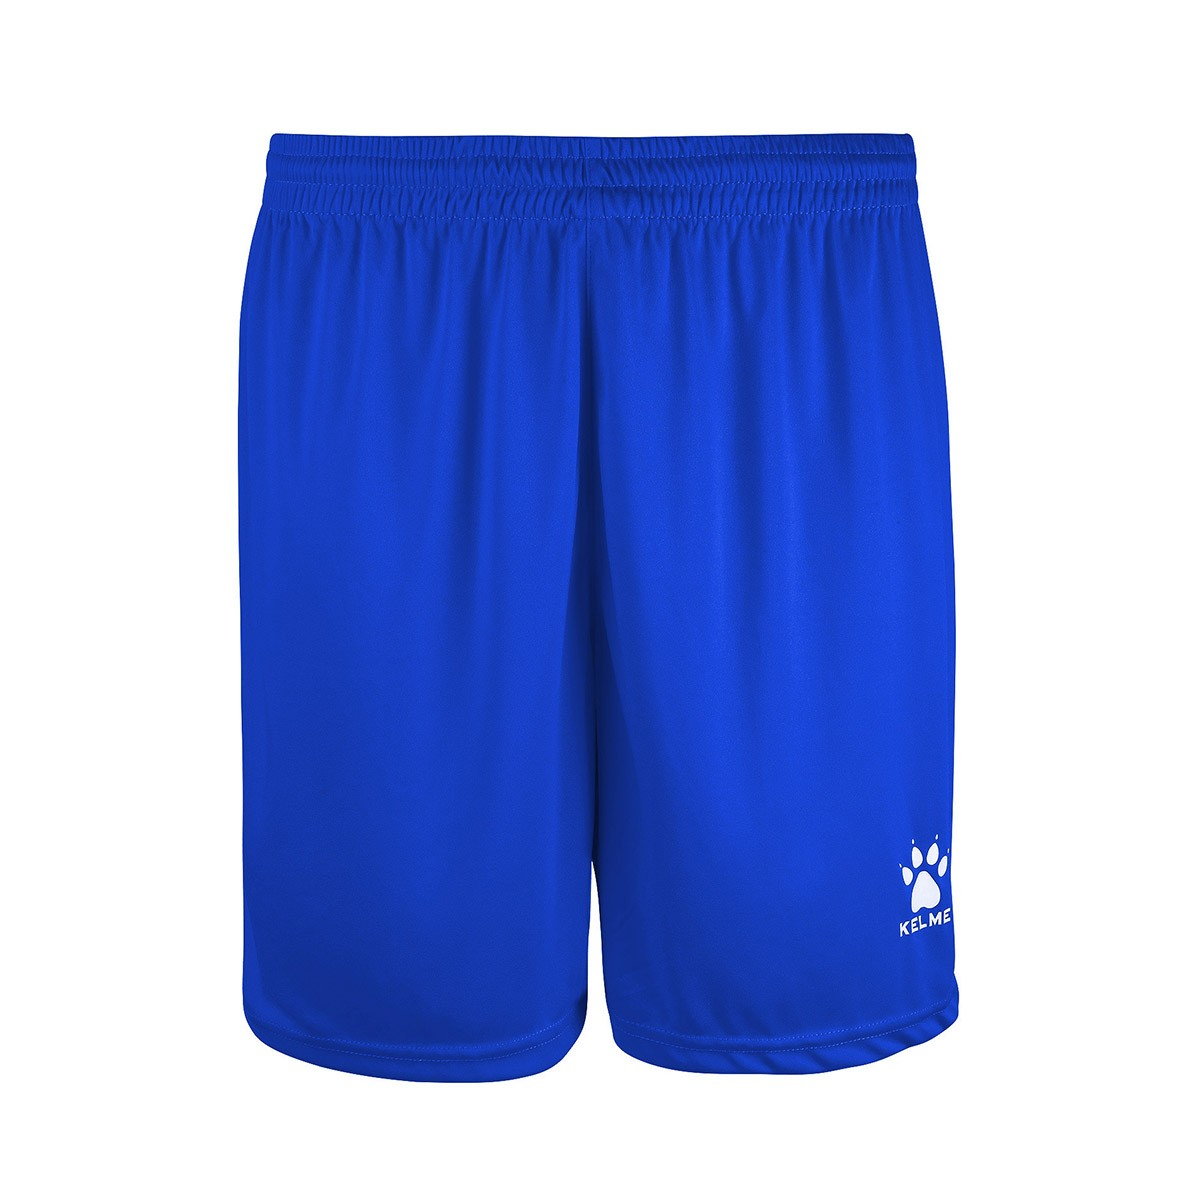 ca7971b4ce2 Shorts Kelme Global Azul royal - Leaked soccer